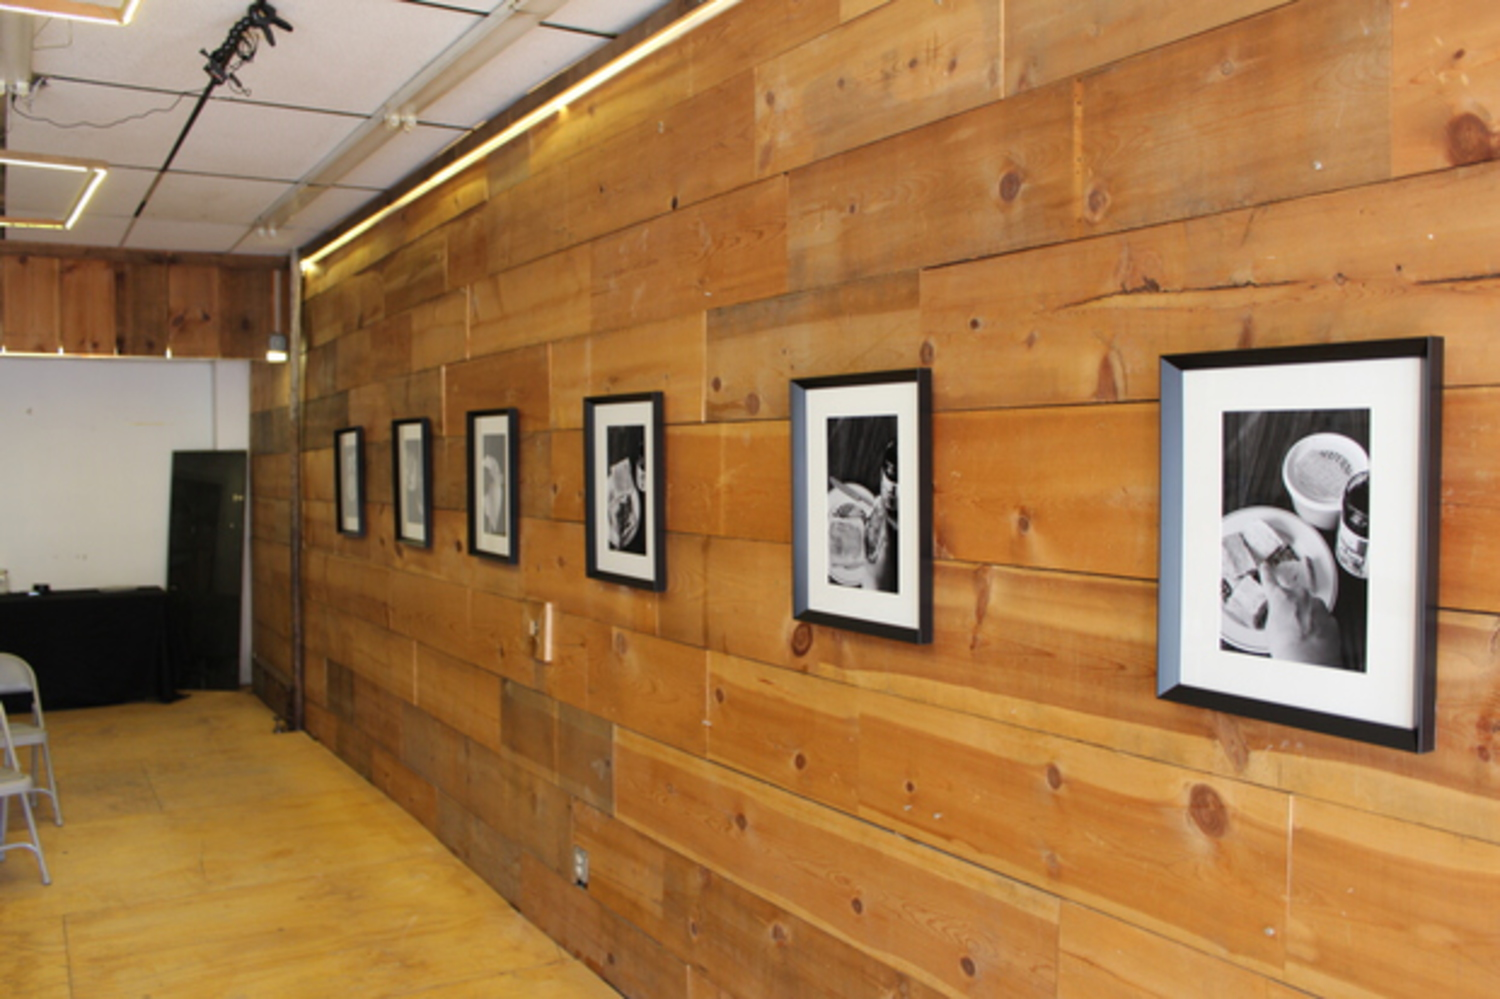 Serving as inspiration, photos her mother took of the sandwich making process hang on the wall that Olah faces all day.